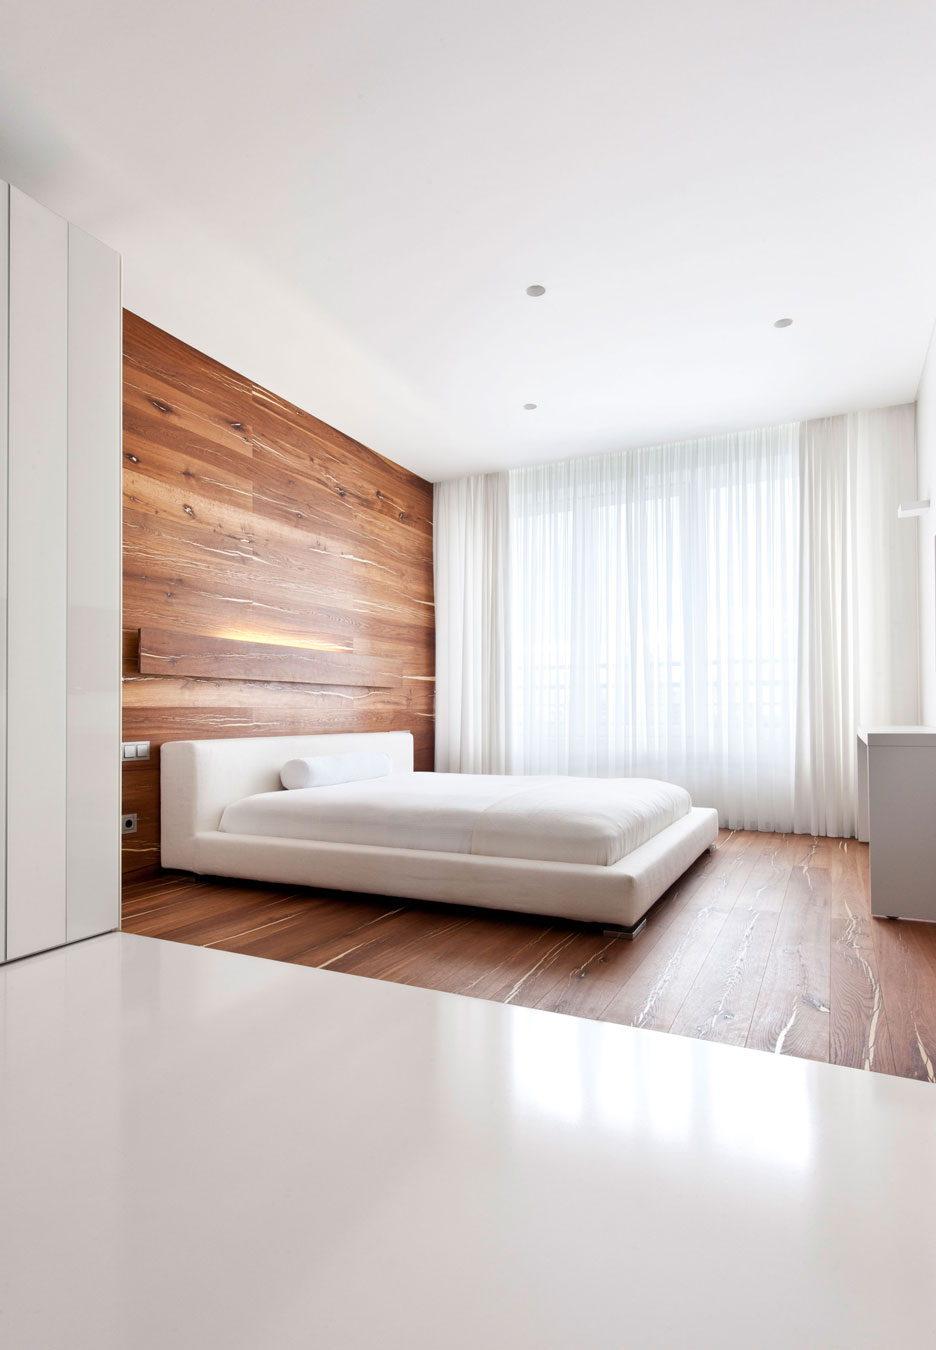 1560234223 512 try a minimalist bedroom design for less stress and a good nights sleep - Try a Minimalist Bedroom Design for Less Stress and a Good Night's Sleep